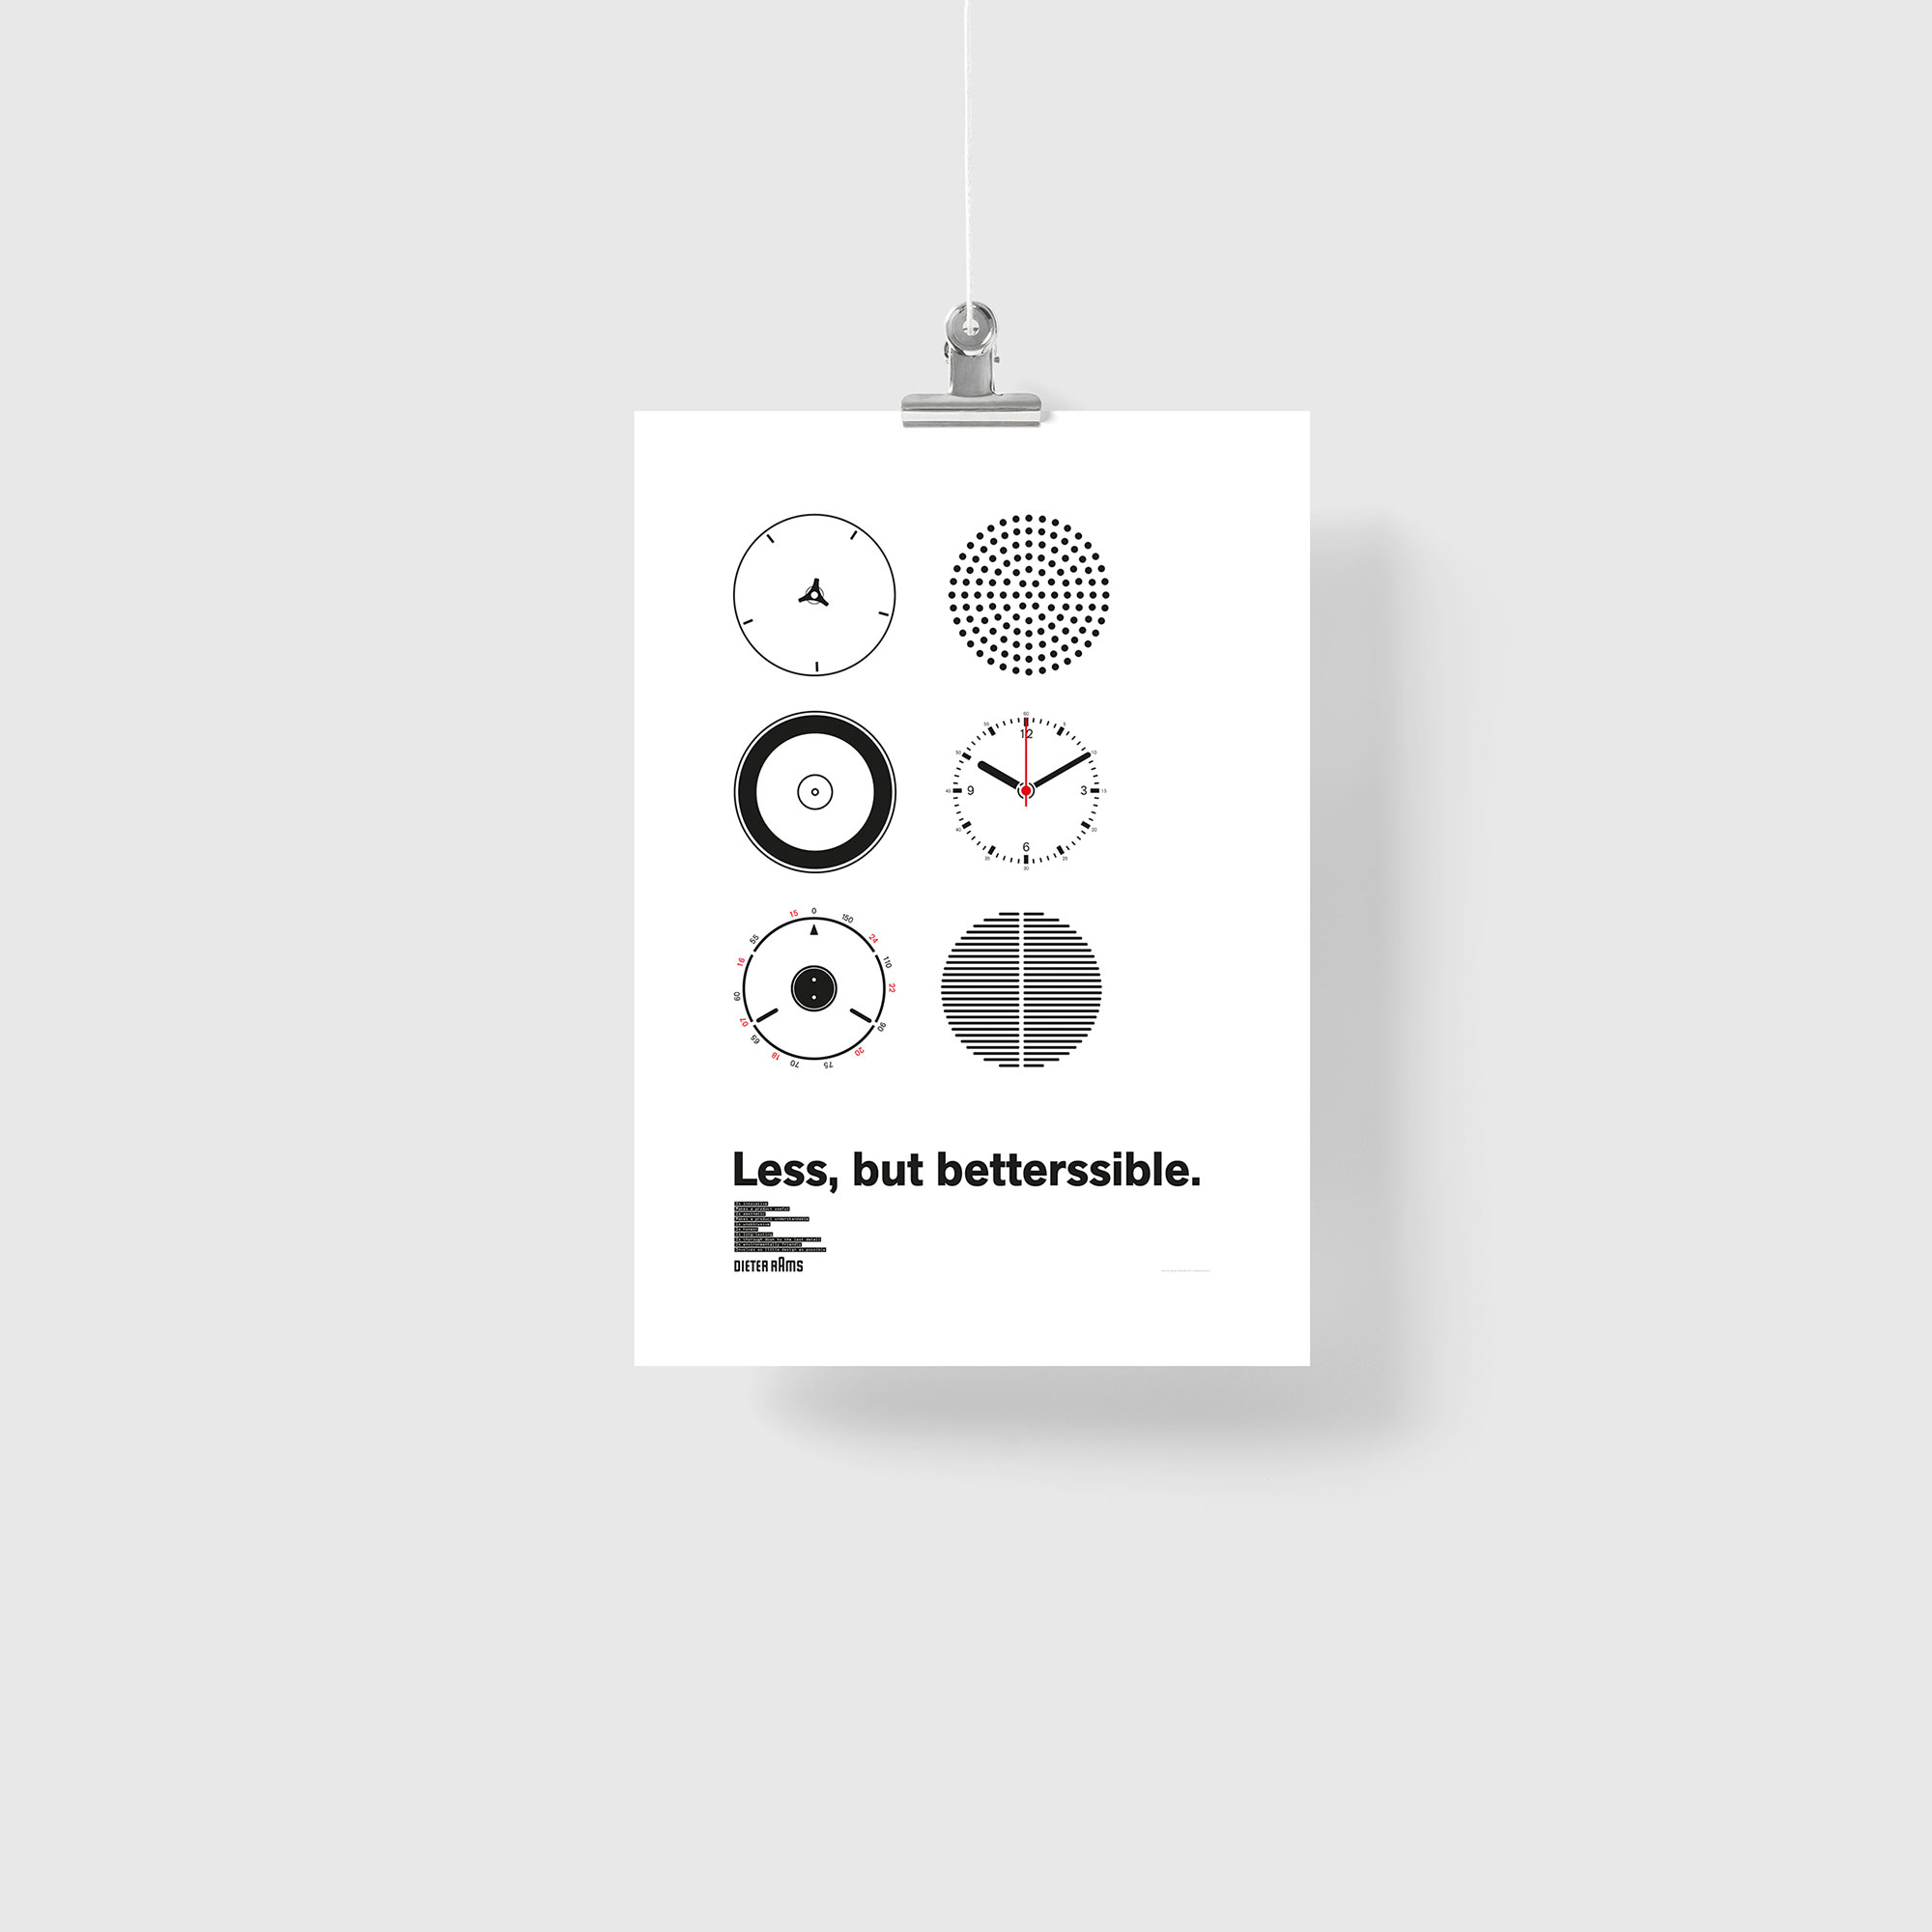 Less, but betterssible – by Dieter Rams, Poster Giclée Print